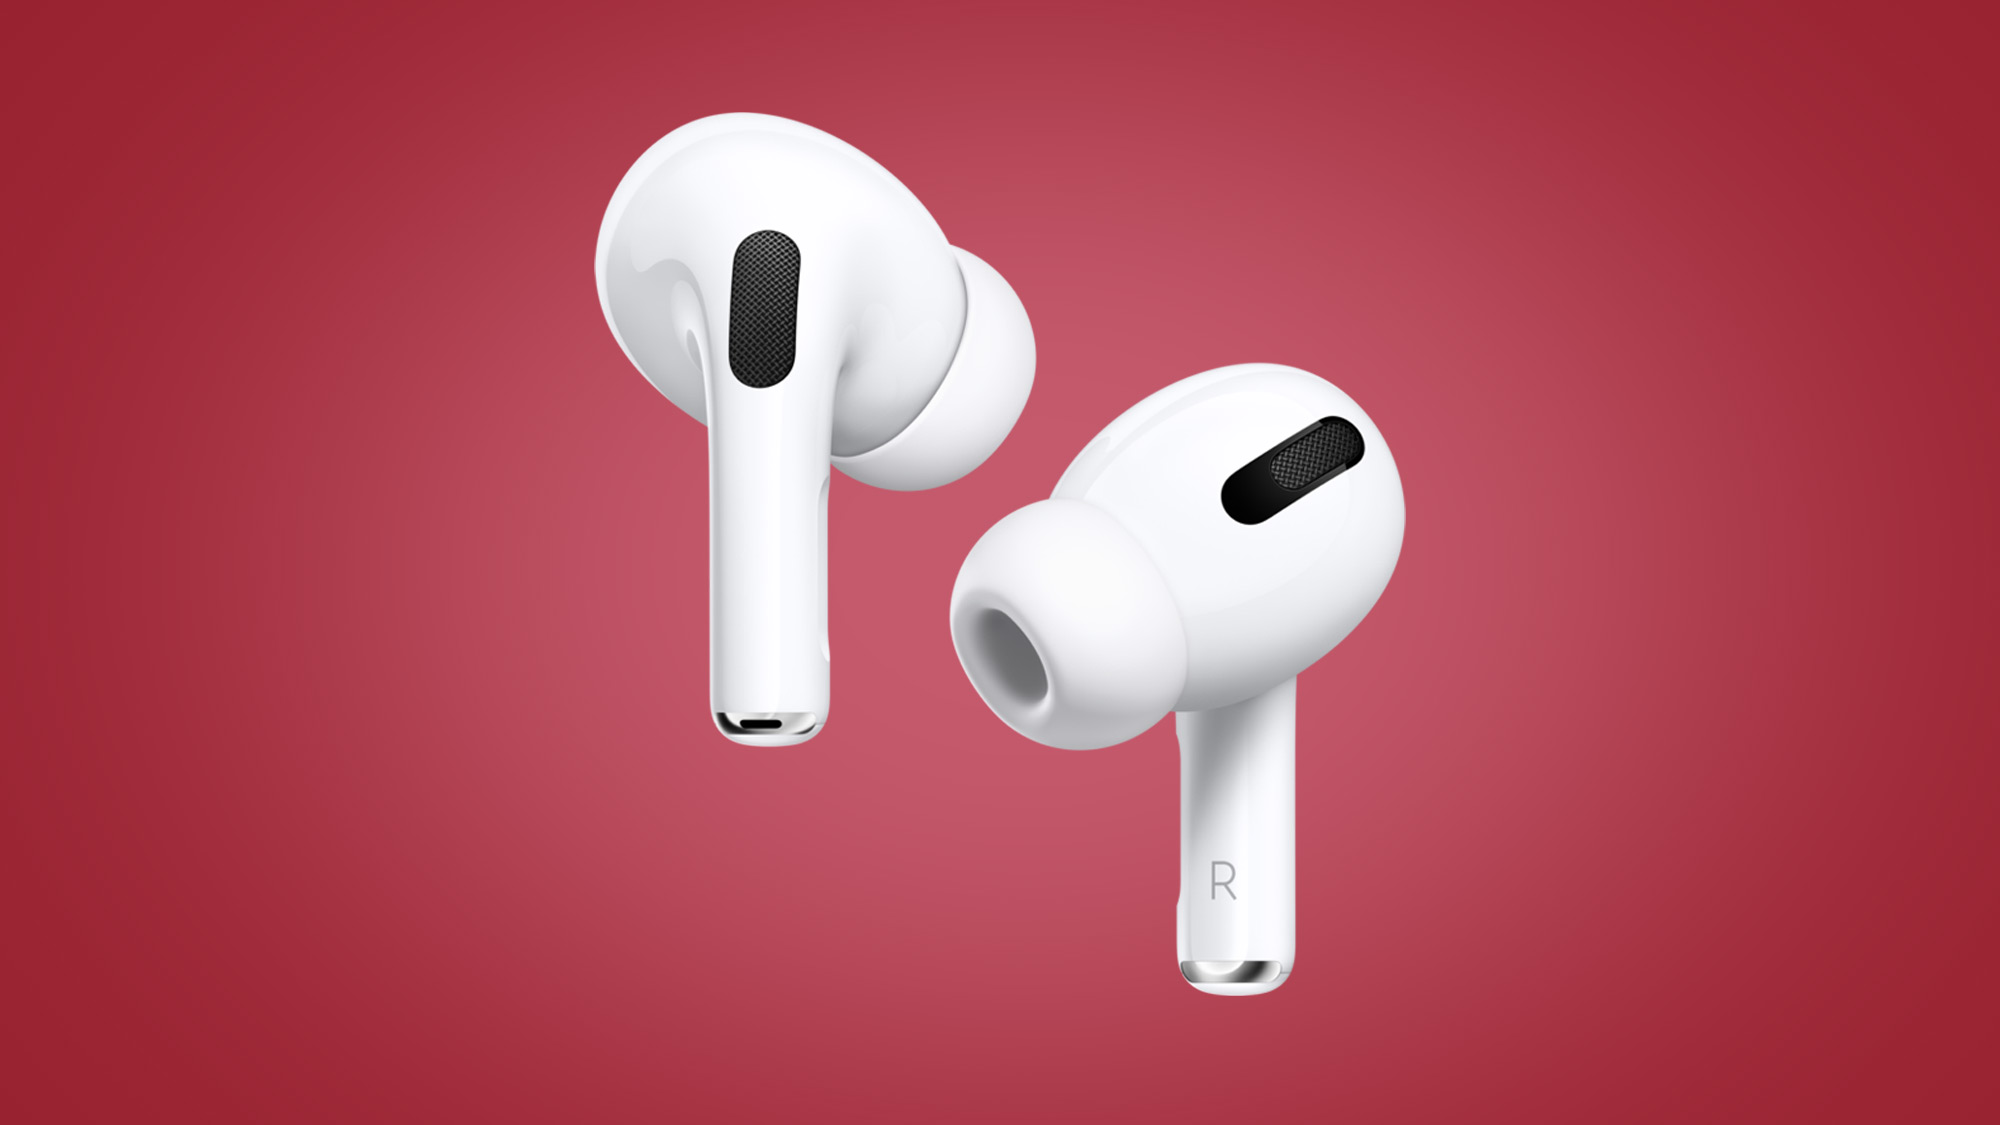 Hurry! The Apple AirPods Pro are back down to their lowest price on Amazon